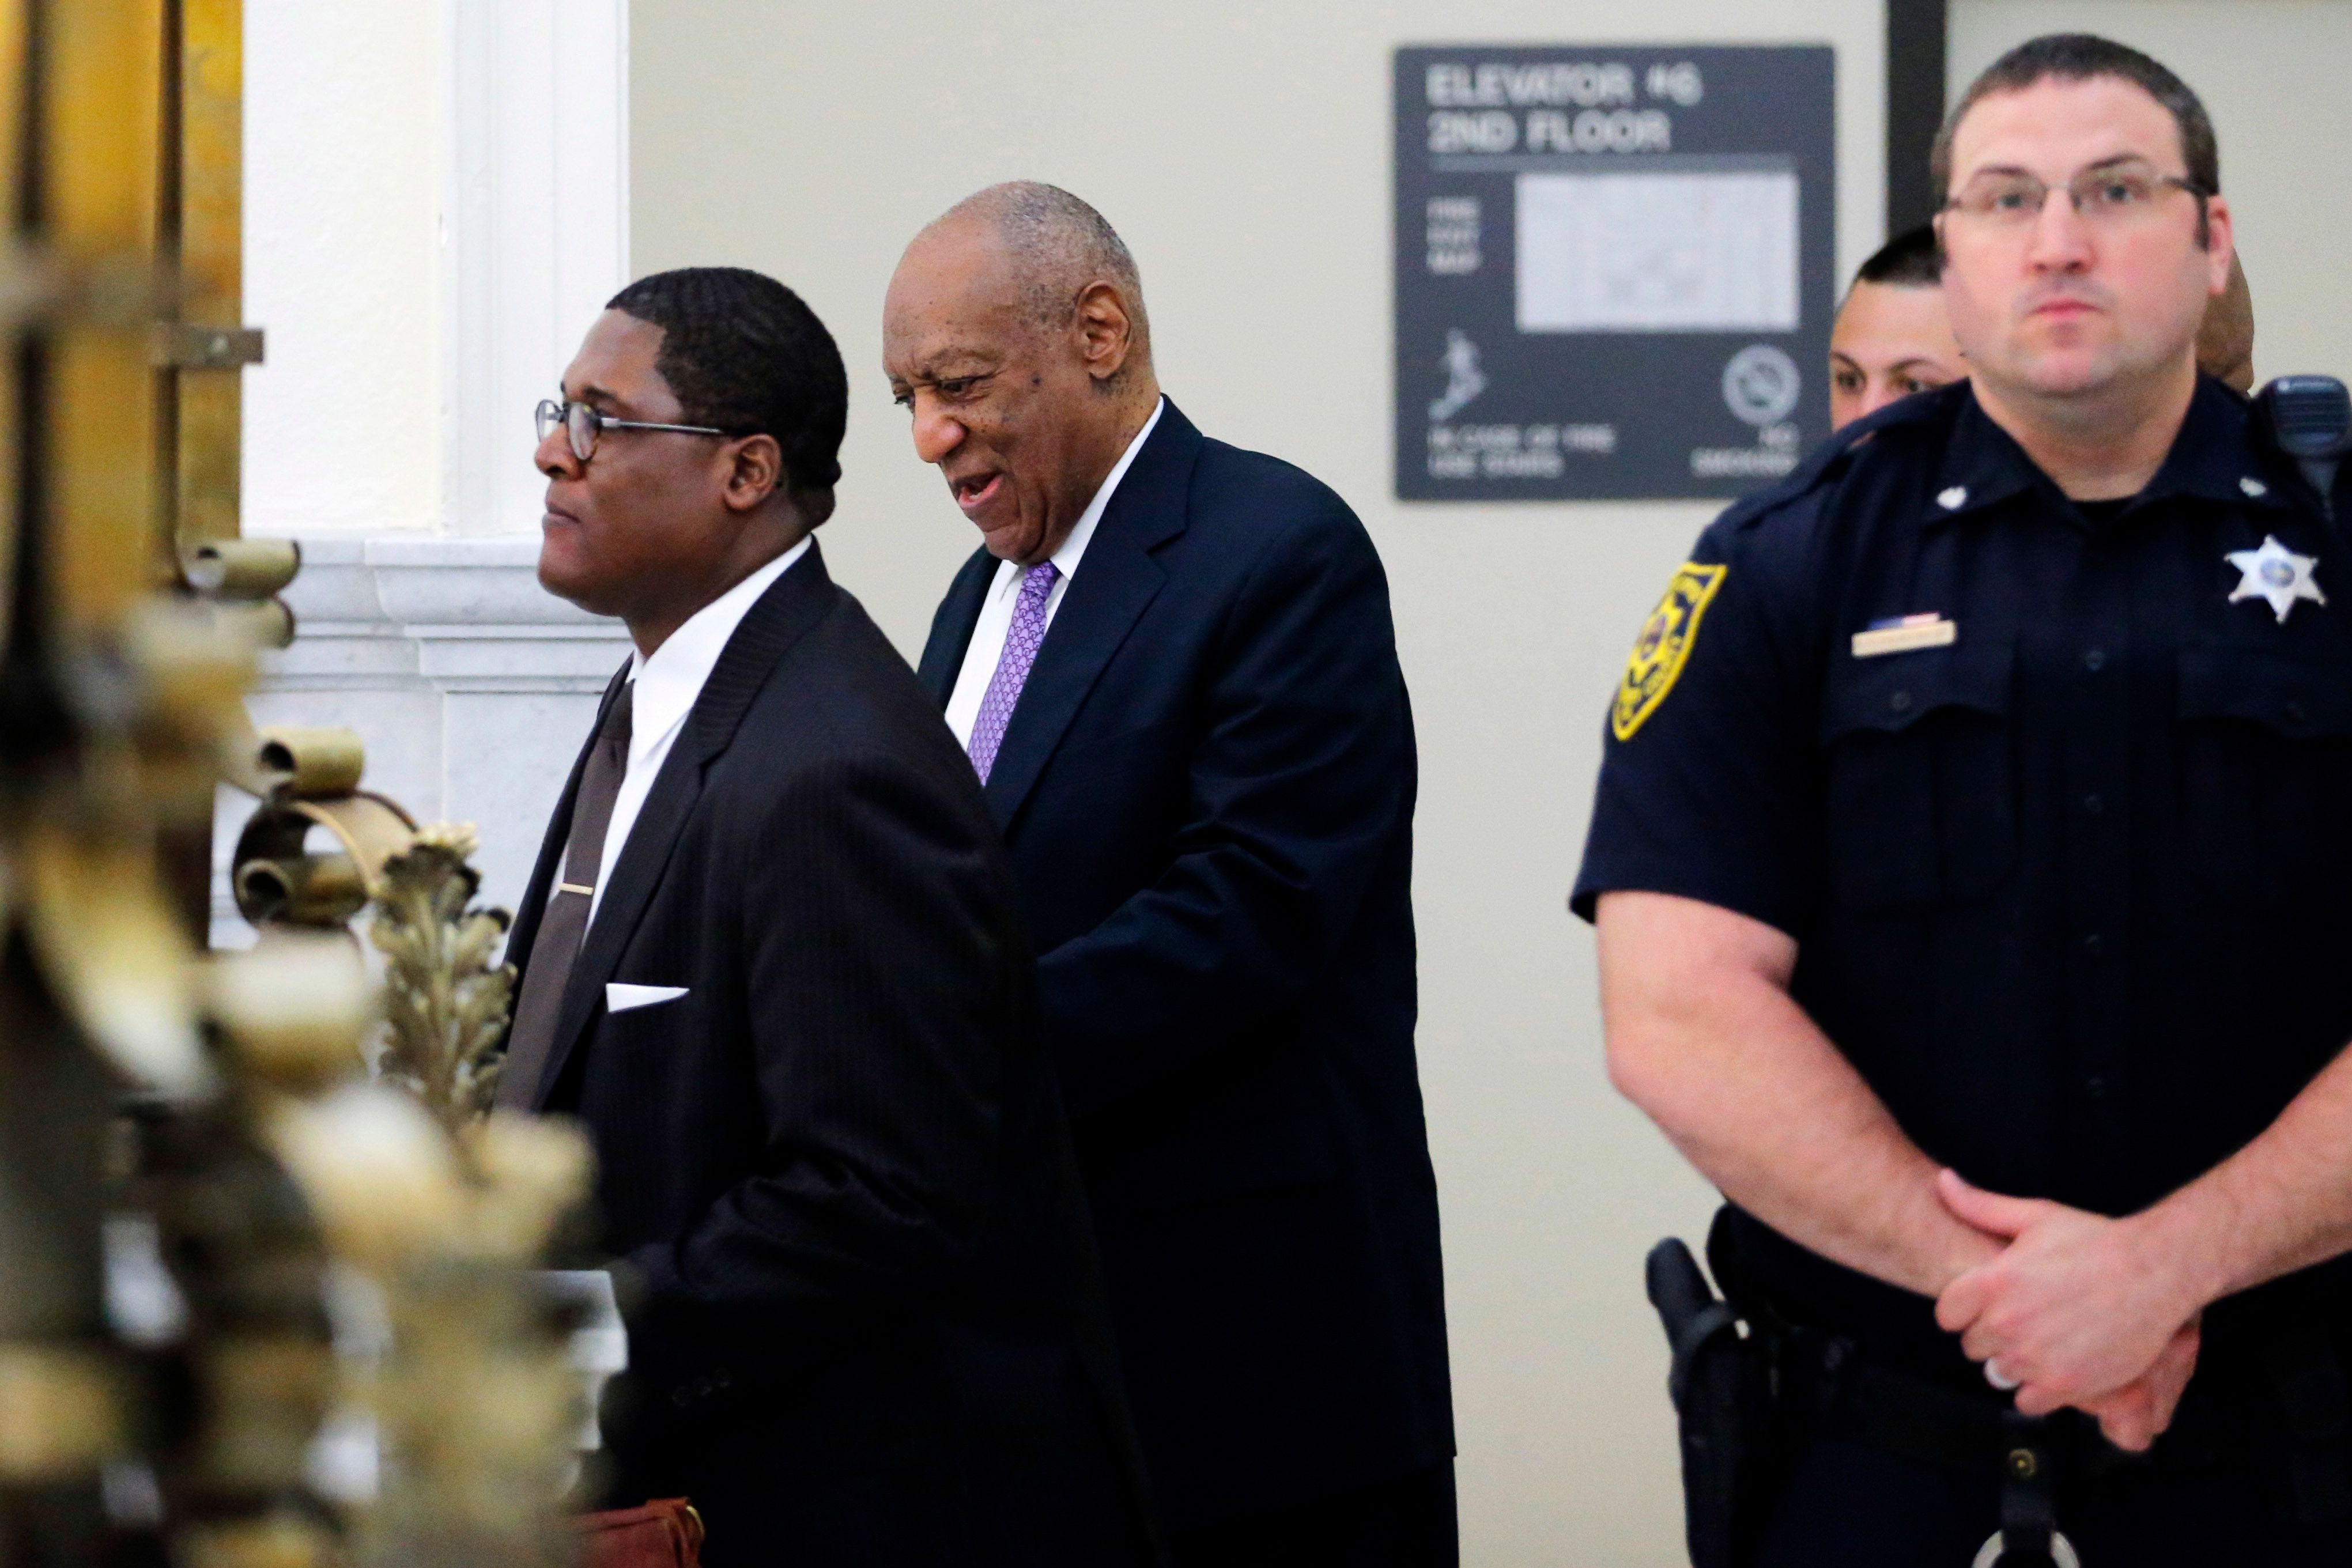 NORRISTOWN, PA - JUNE 9:  Actor and comedian Bill Cosby walks into the courtroom after a lunch break during the fifth day of Cosby's sexual assault trial at the Montgomery County Courthouse June 9, 2017  in Norristown, Pennsylvania.  A former Temple University employee alleges that the entertainer drugged and molested her in 2004 at his home in suburban Philadelphia.  More than 40 women have accused the 79-year-old entertainer of sexual assault.  (Photo by Lucas Jackson-Pool/Getty Images)